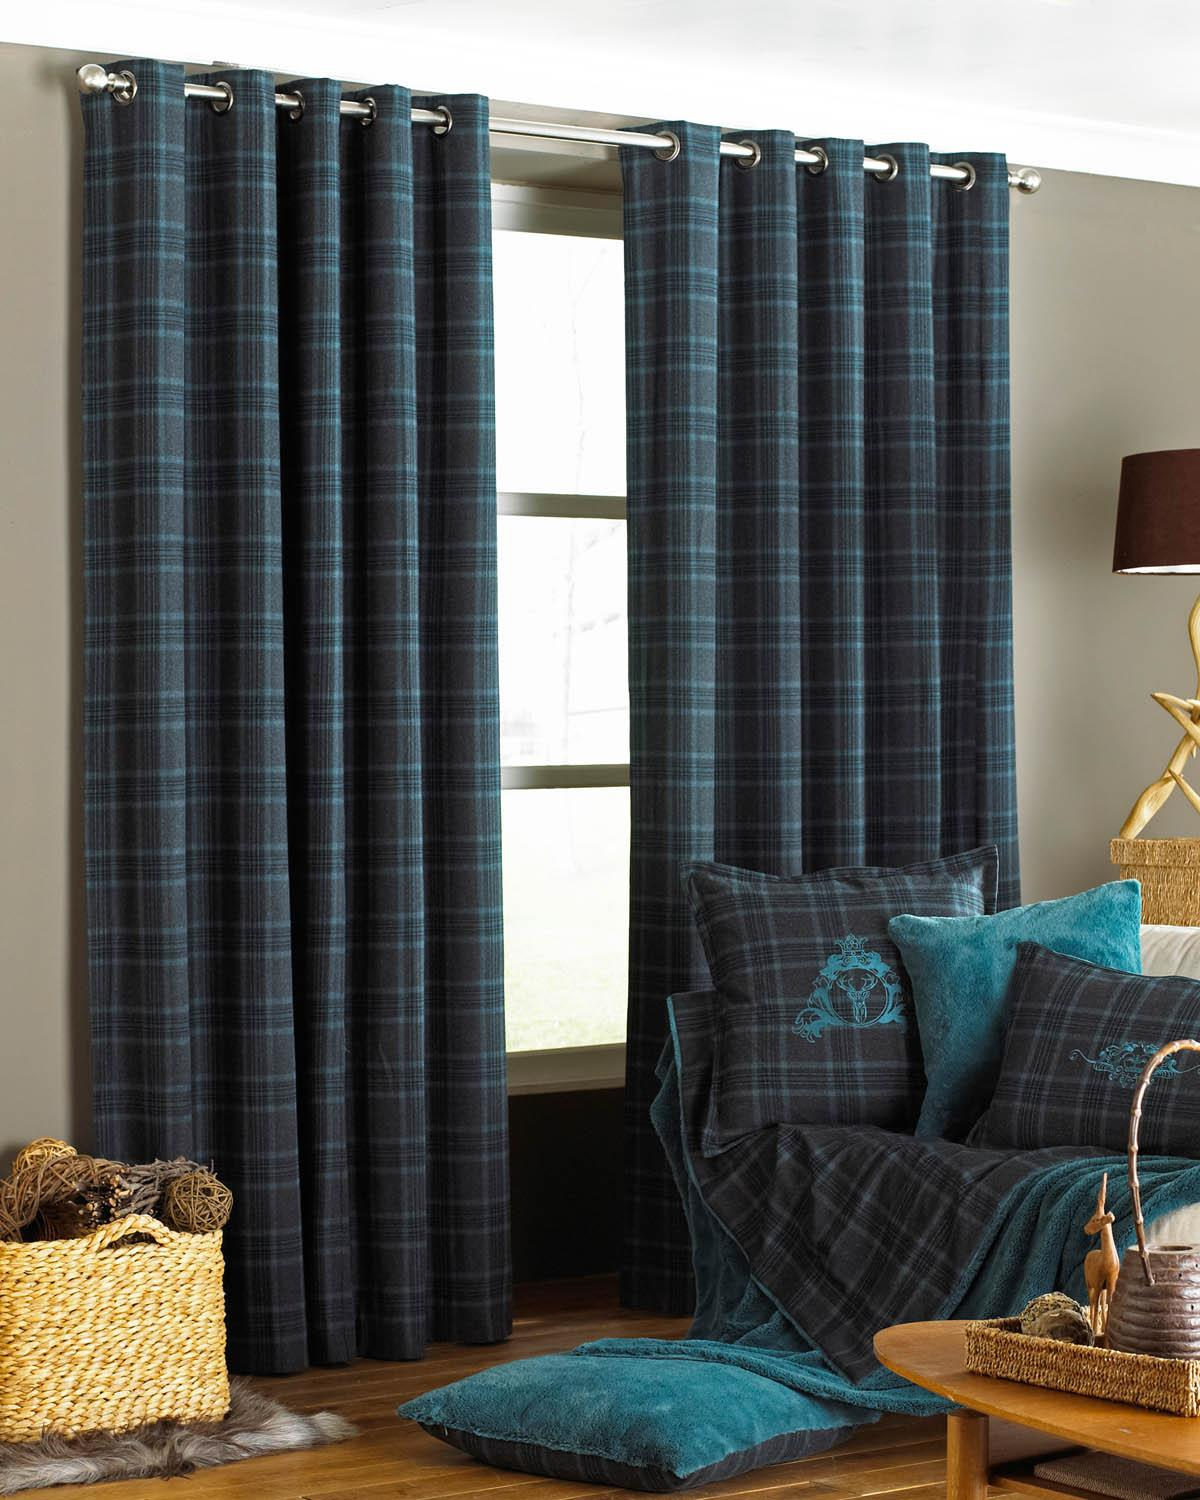 Teal Living Room Curtains Verbier Ready Made Eyelet Curtains Teal Eyelet Curtains Uk